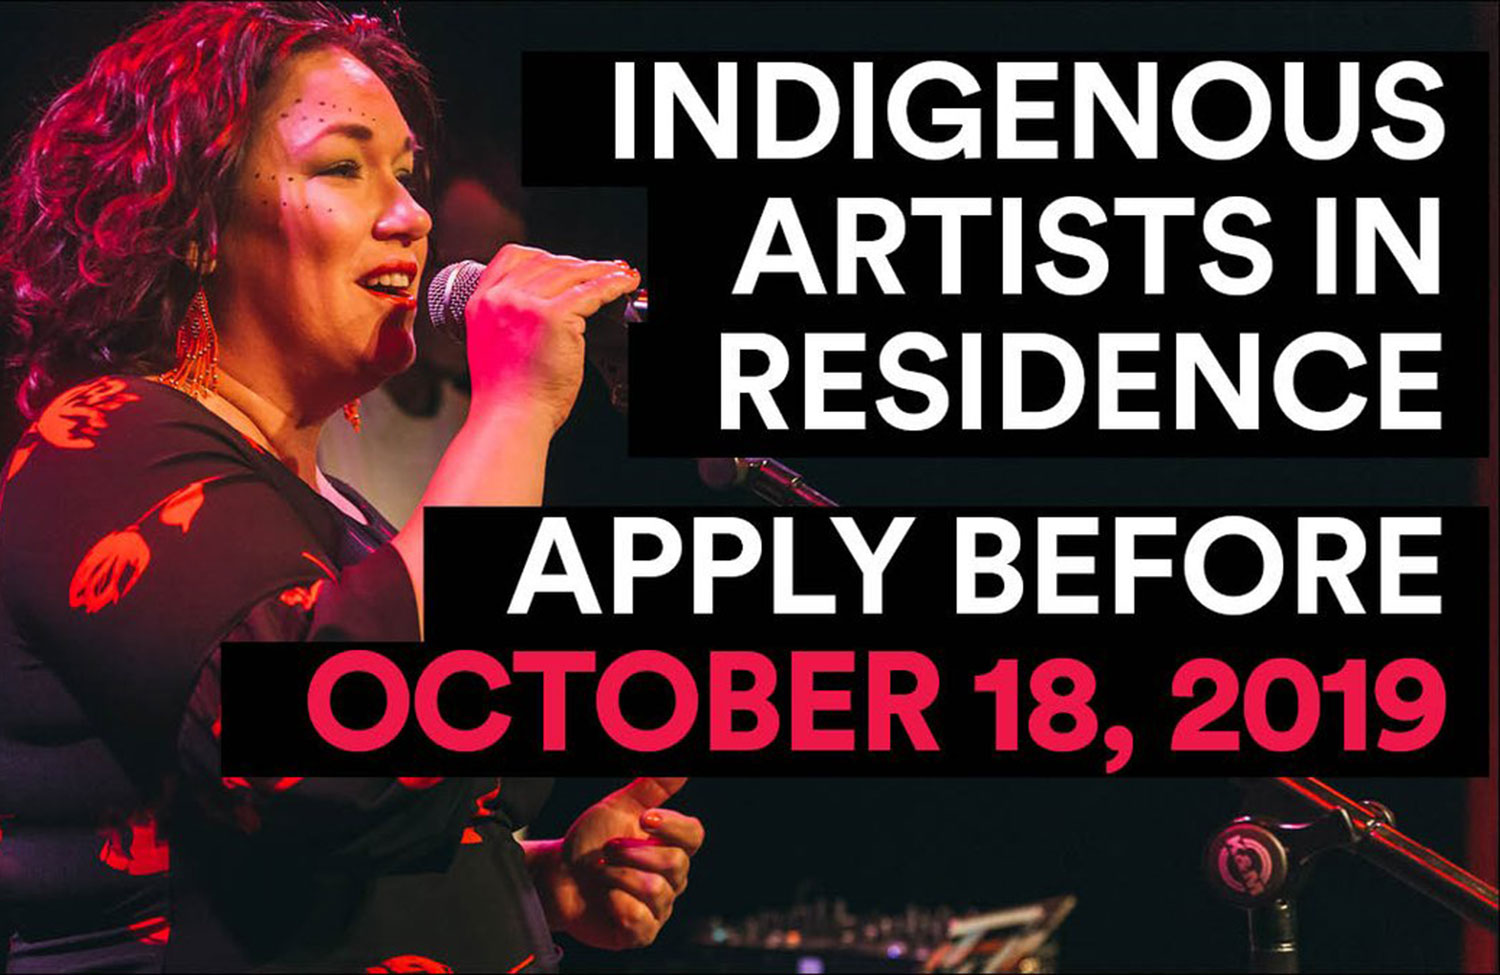 CALL FOR APPLICANTS: INDIGENOUS ARTISTS IN RESIDENCE